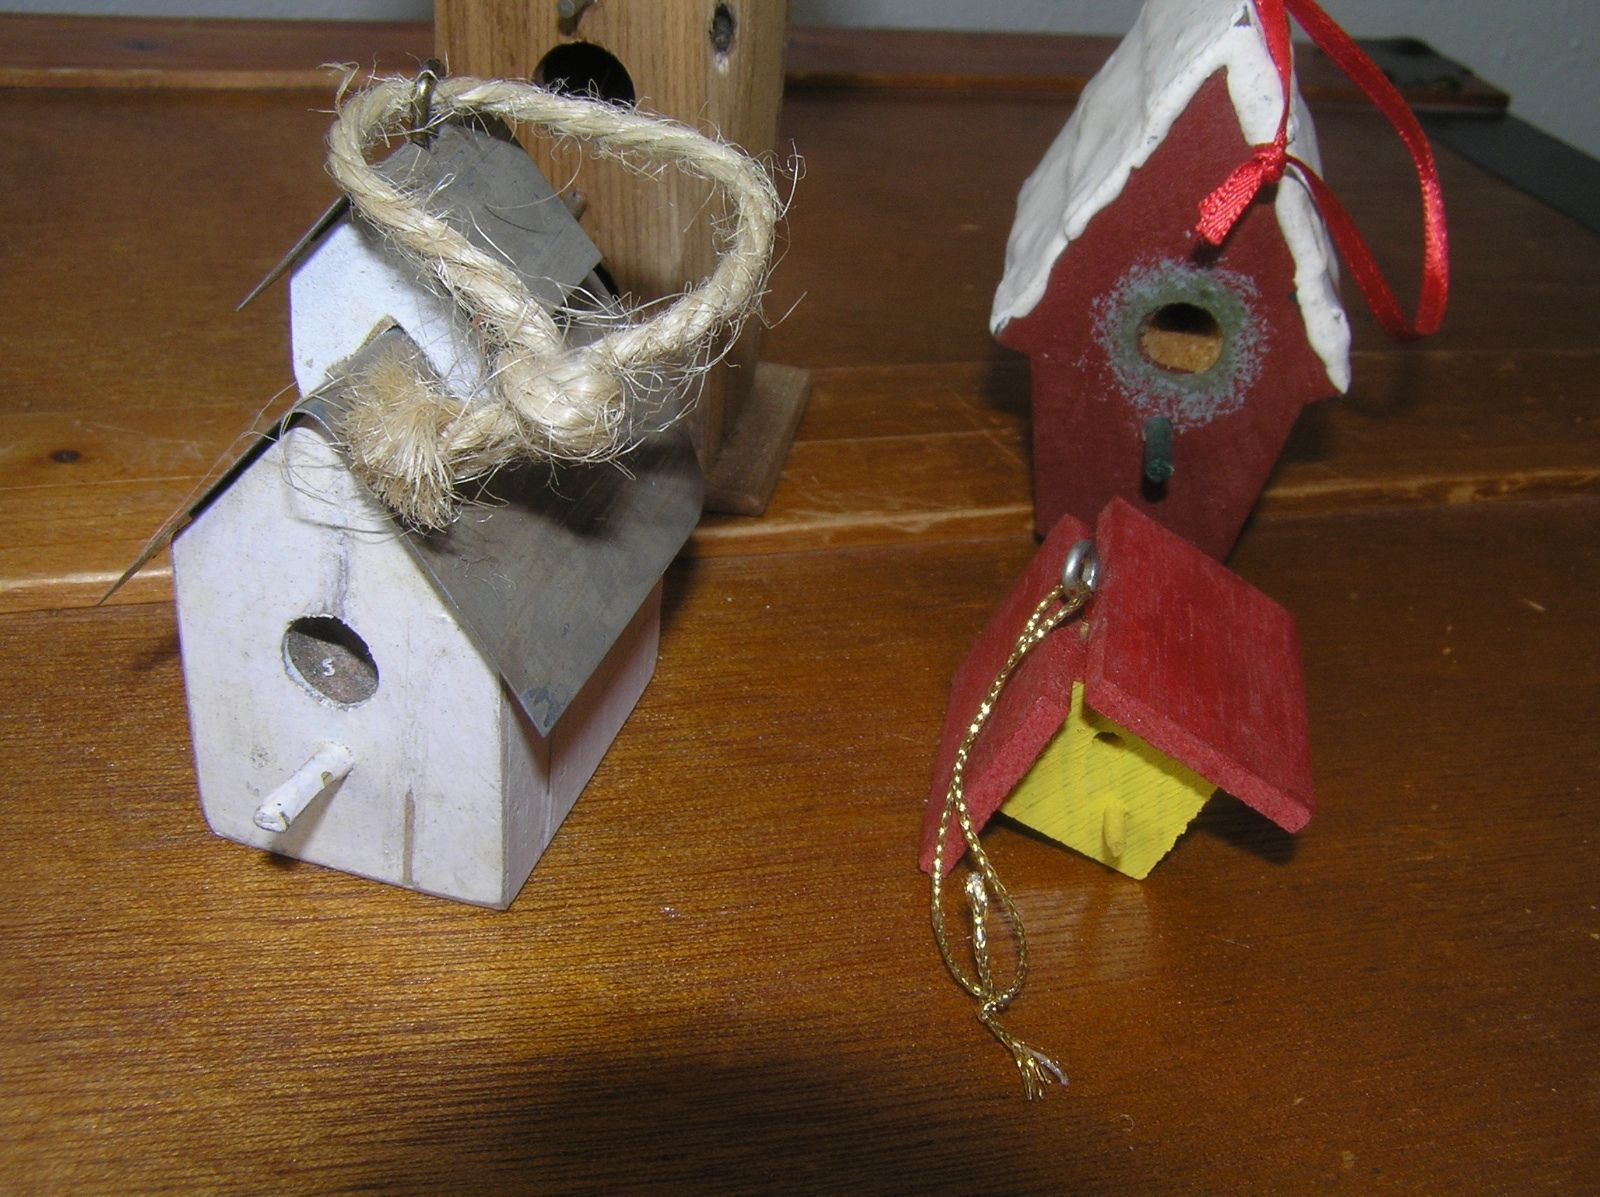 Lot of 4 Painted Wood Birdhouse Tree Ornaments – one handcrafted in North Dakota